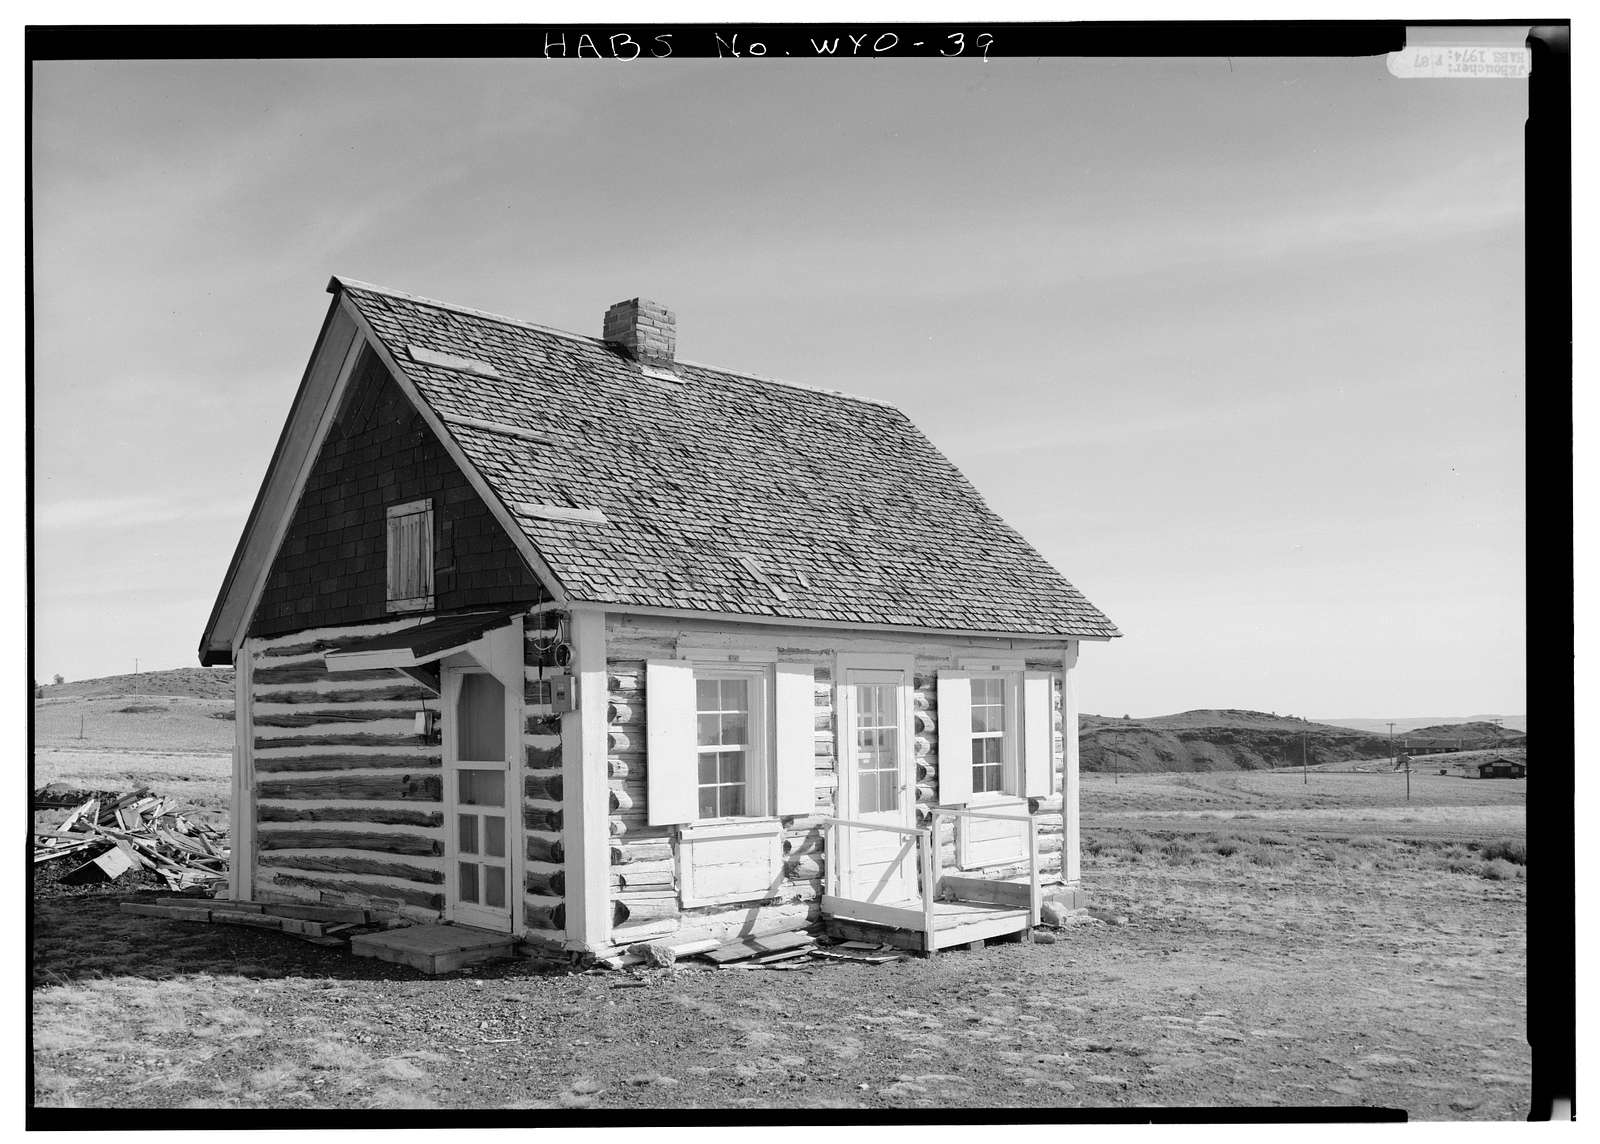 Libby Cabin, State Route 28, (moved from South Pass City vicinity), South Pass City, Fremont County, WY